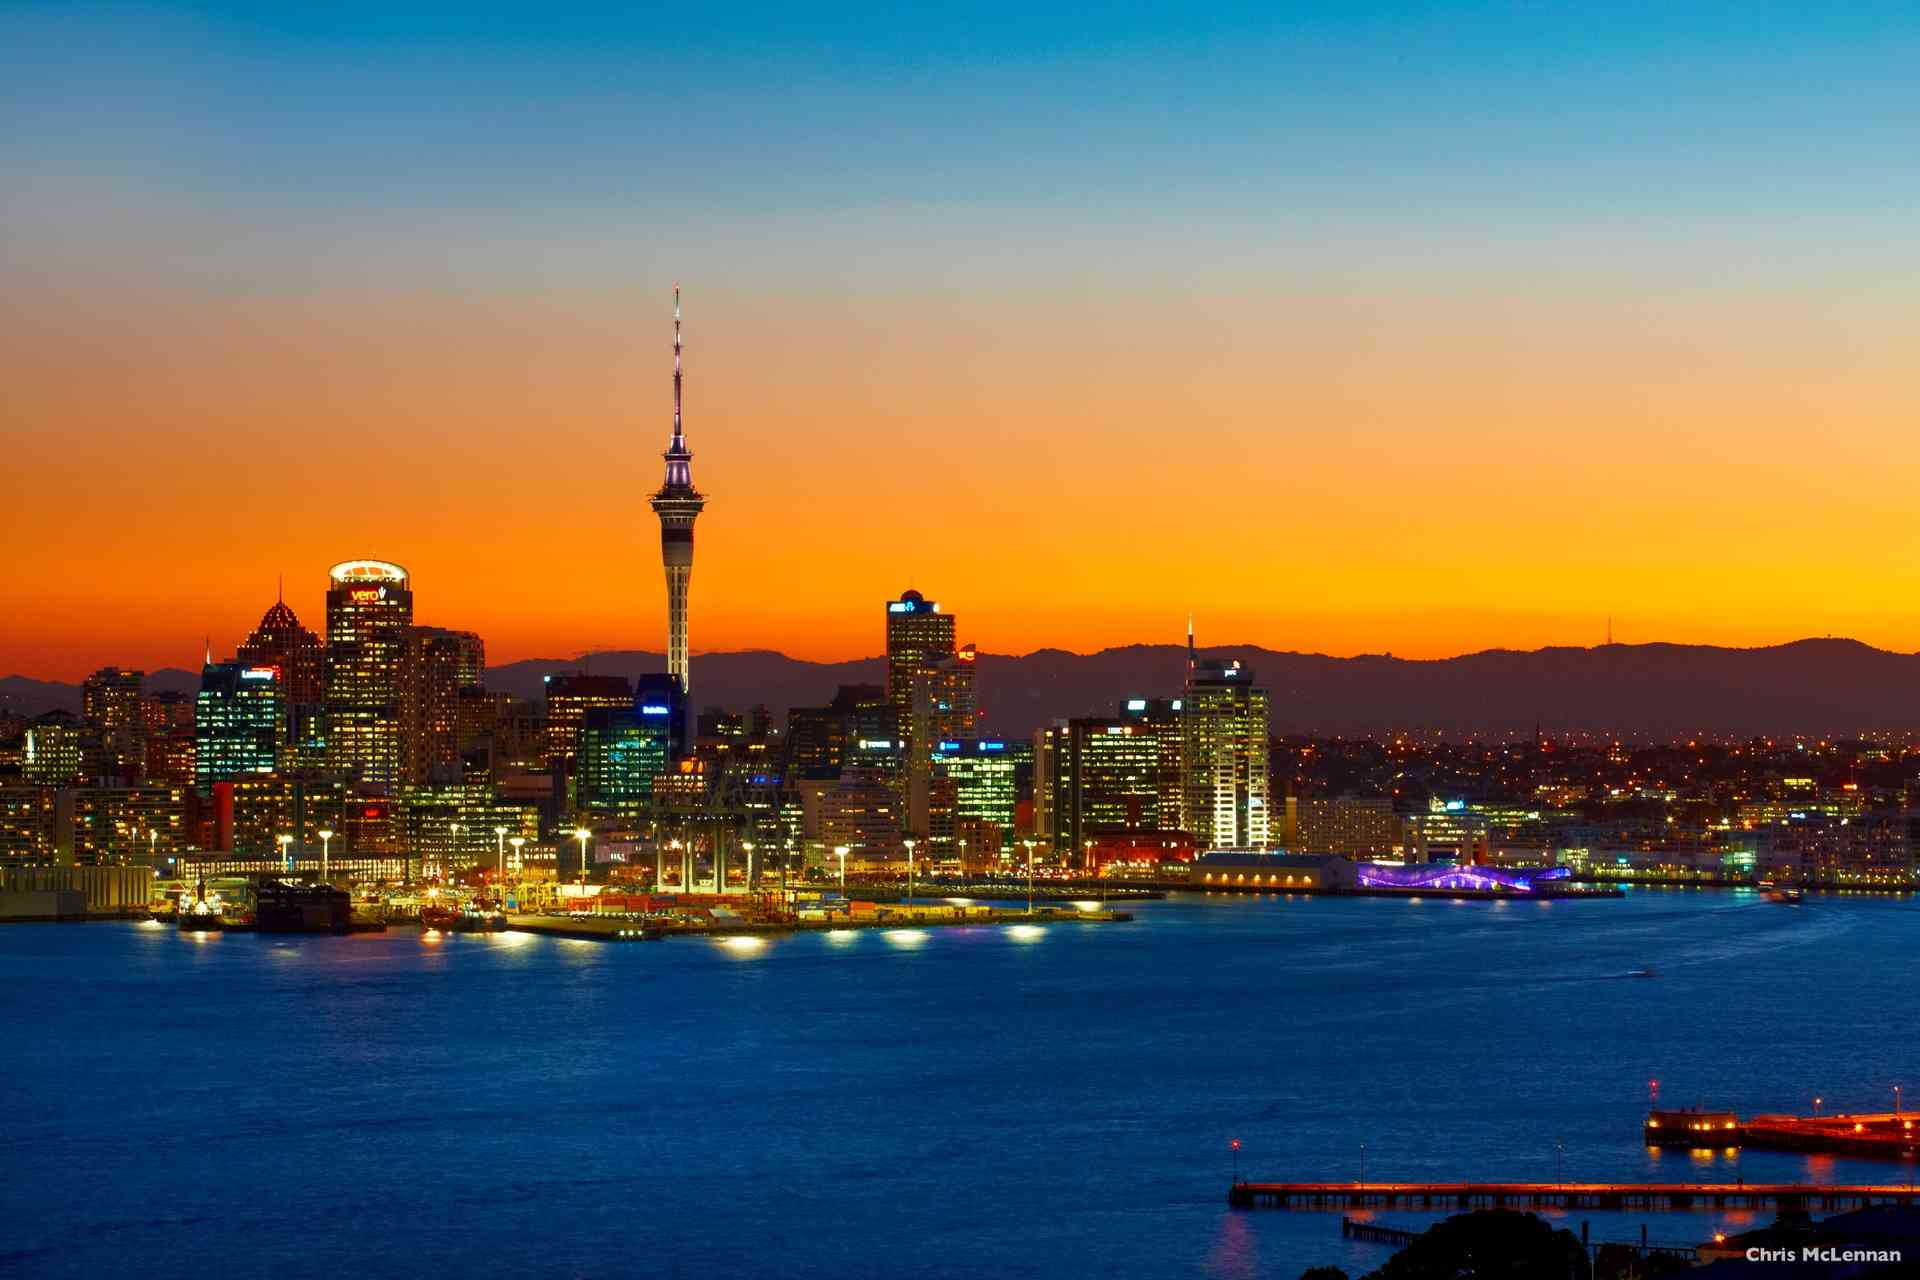 Auckland, New Zealand by Chris McLennan